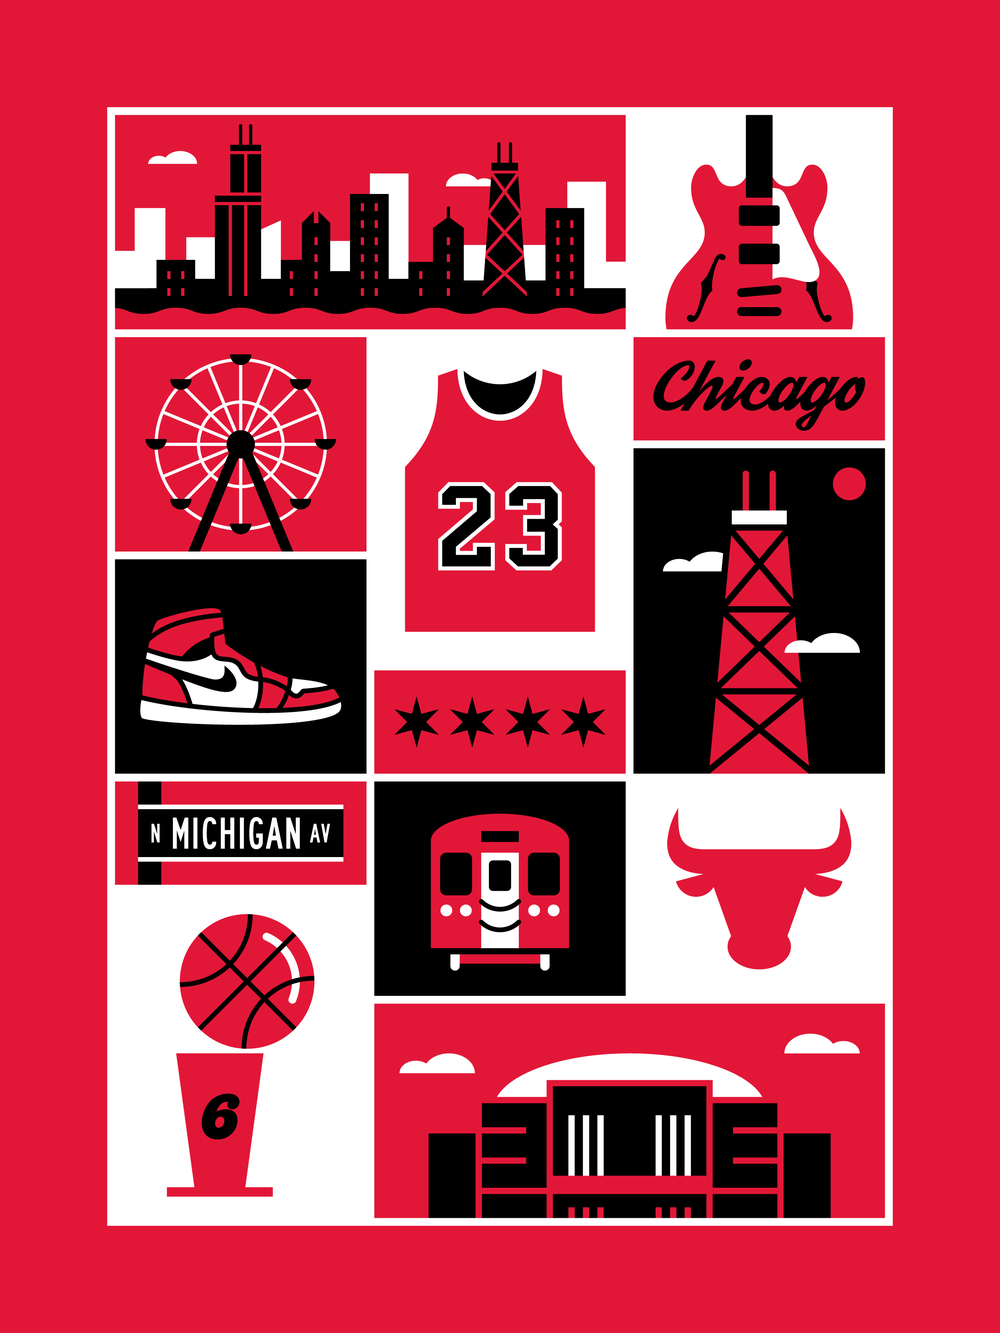 chicago-basketball-elias-stein.png